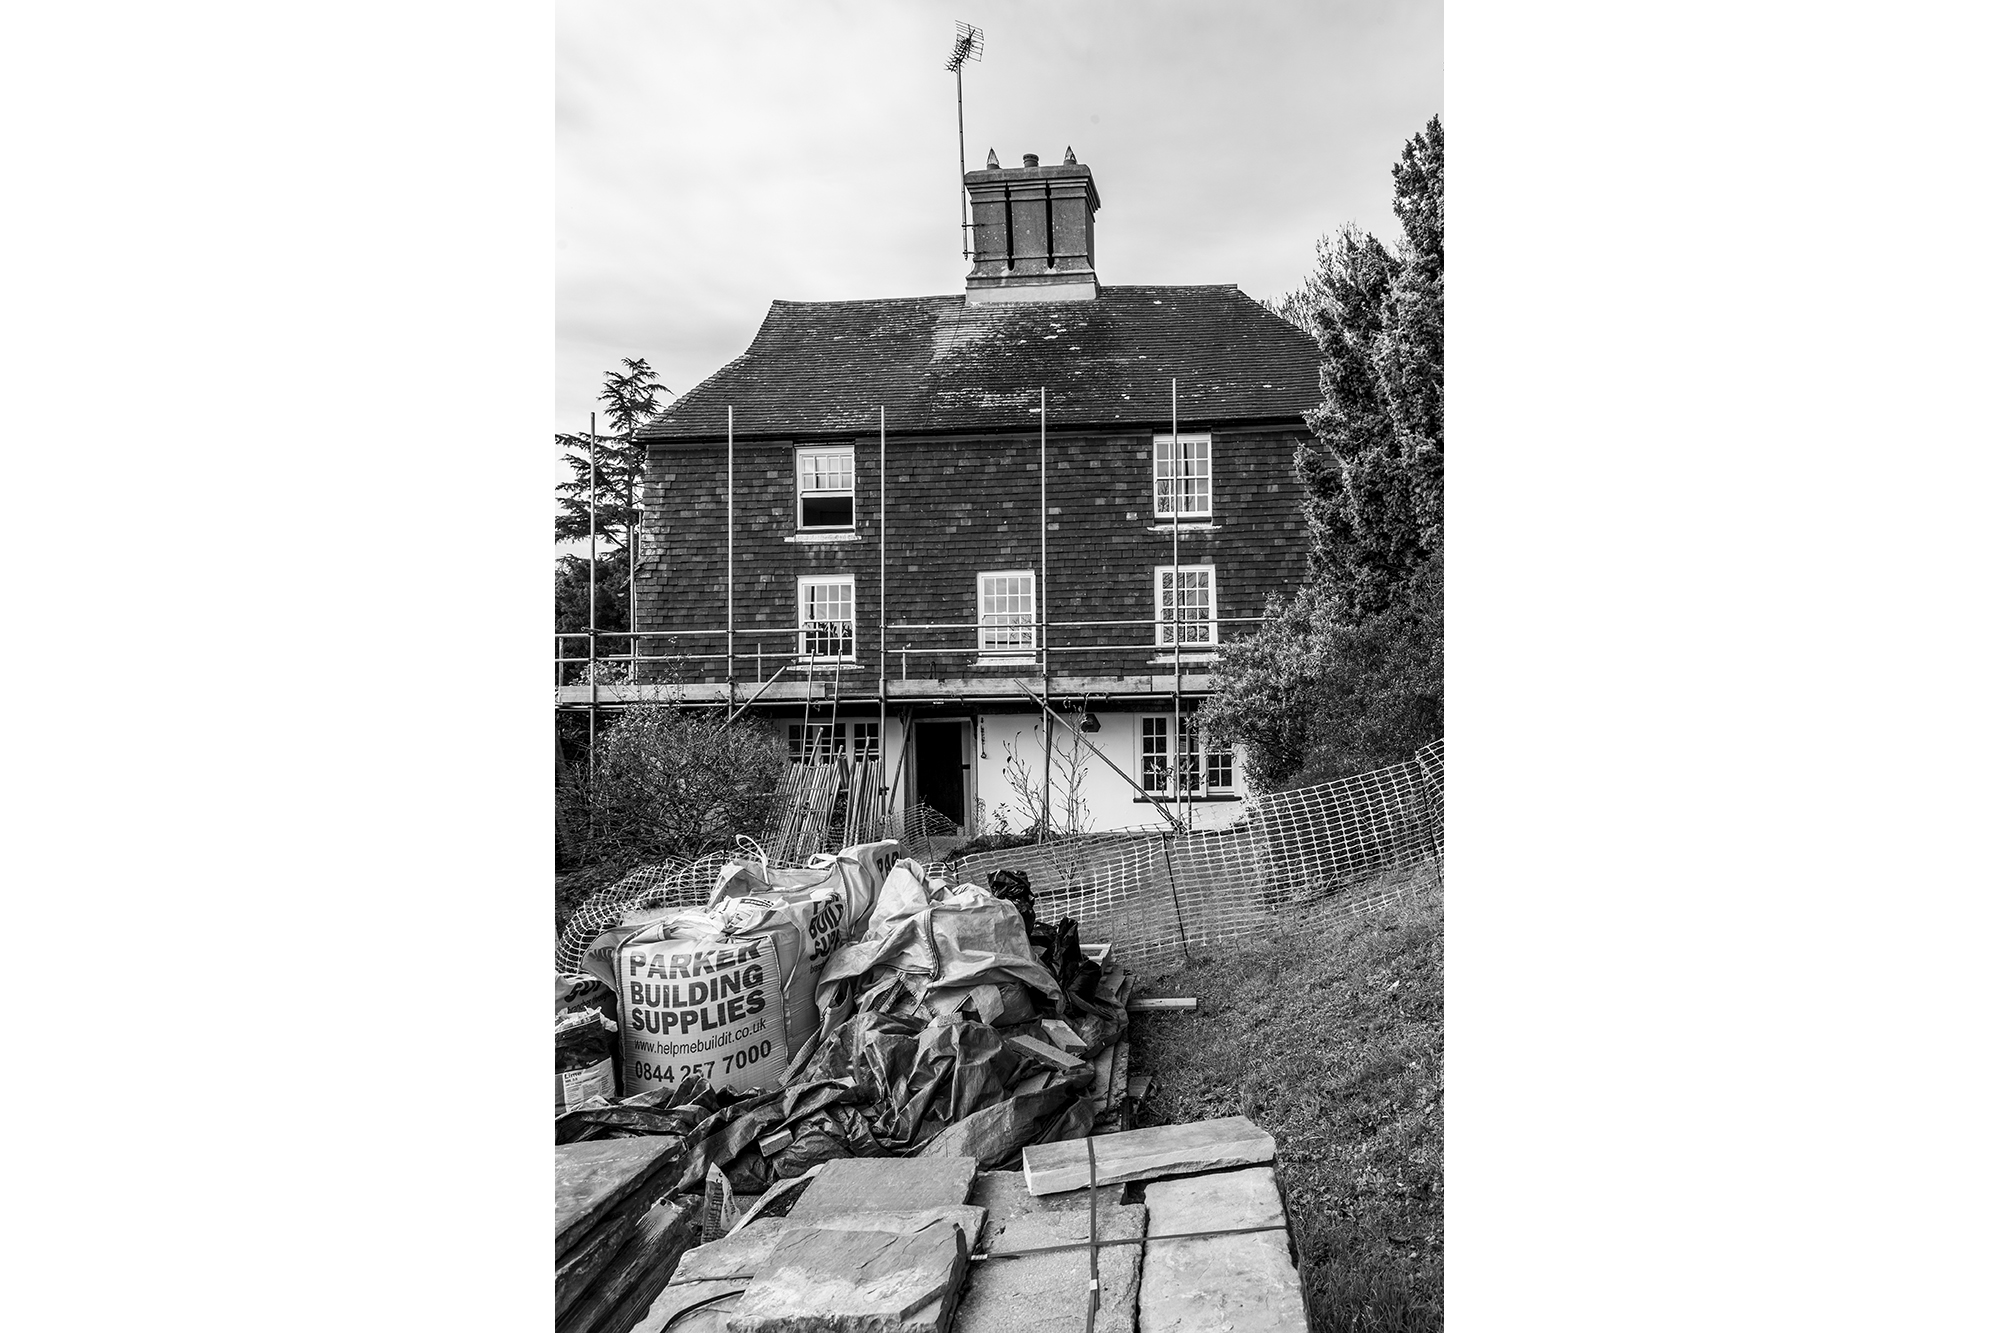 TottFarmHouse_Construction079.jpg